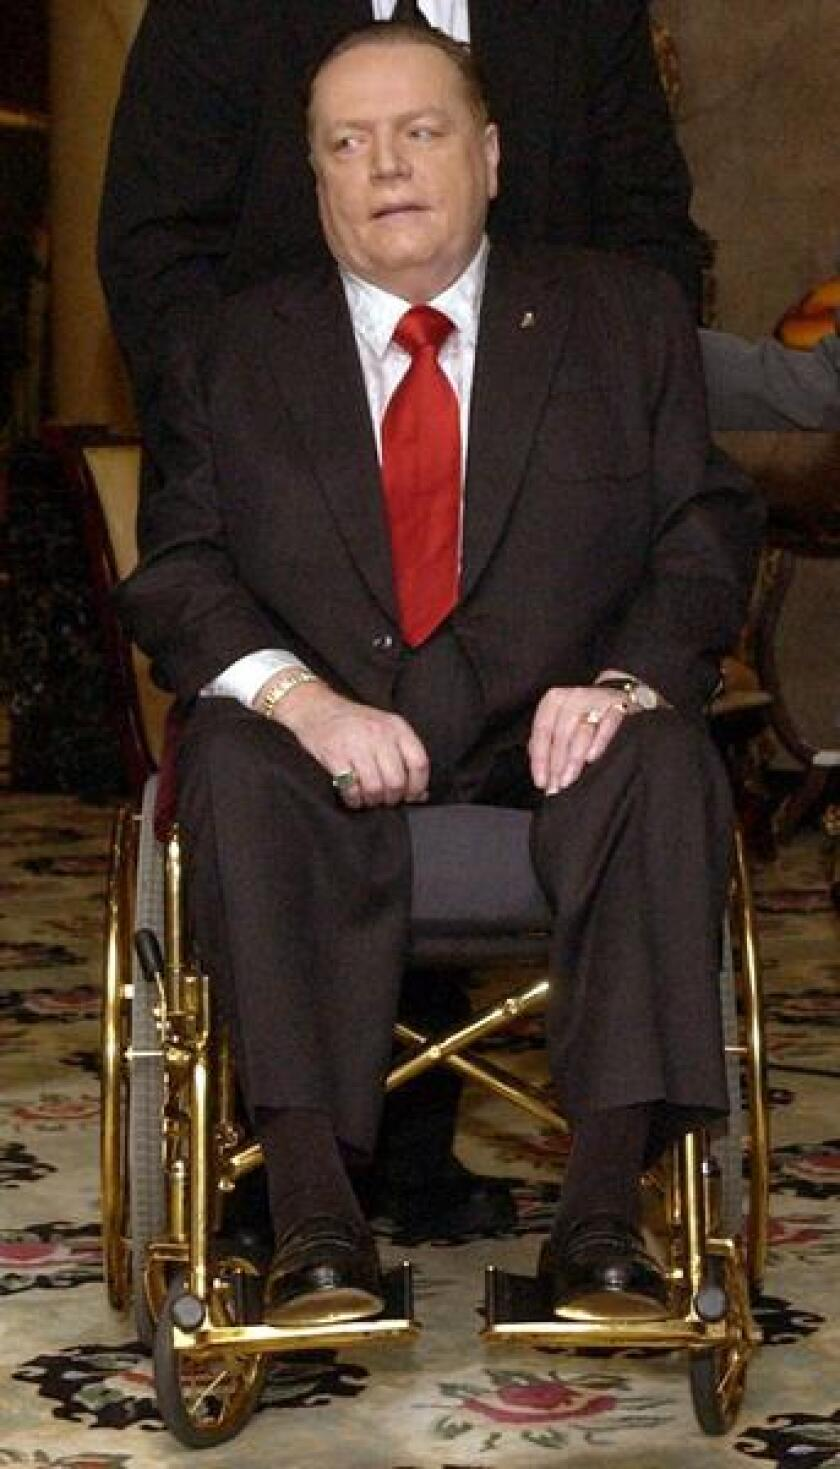 Huster magazine publisher Larry Flynt at a Beverly Hills press conference in 2003.